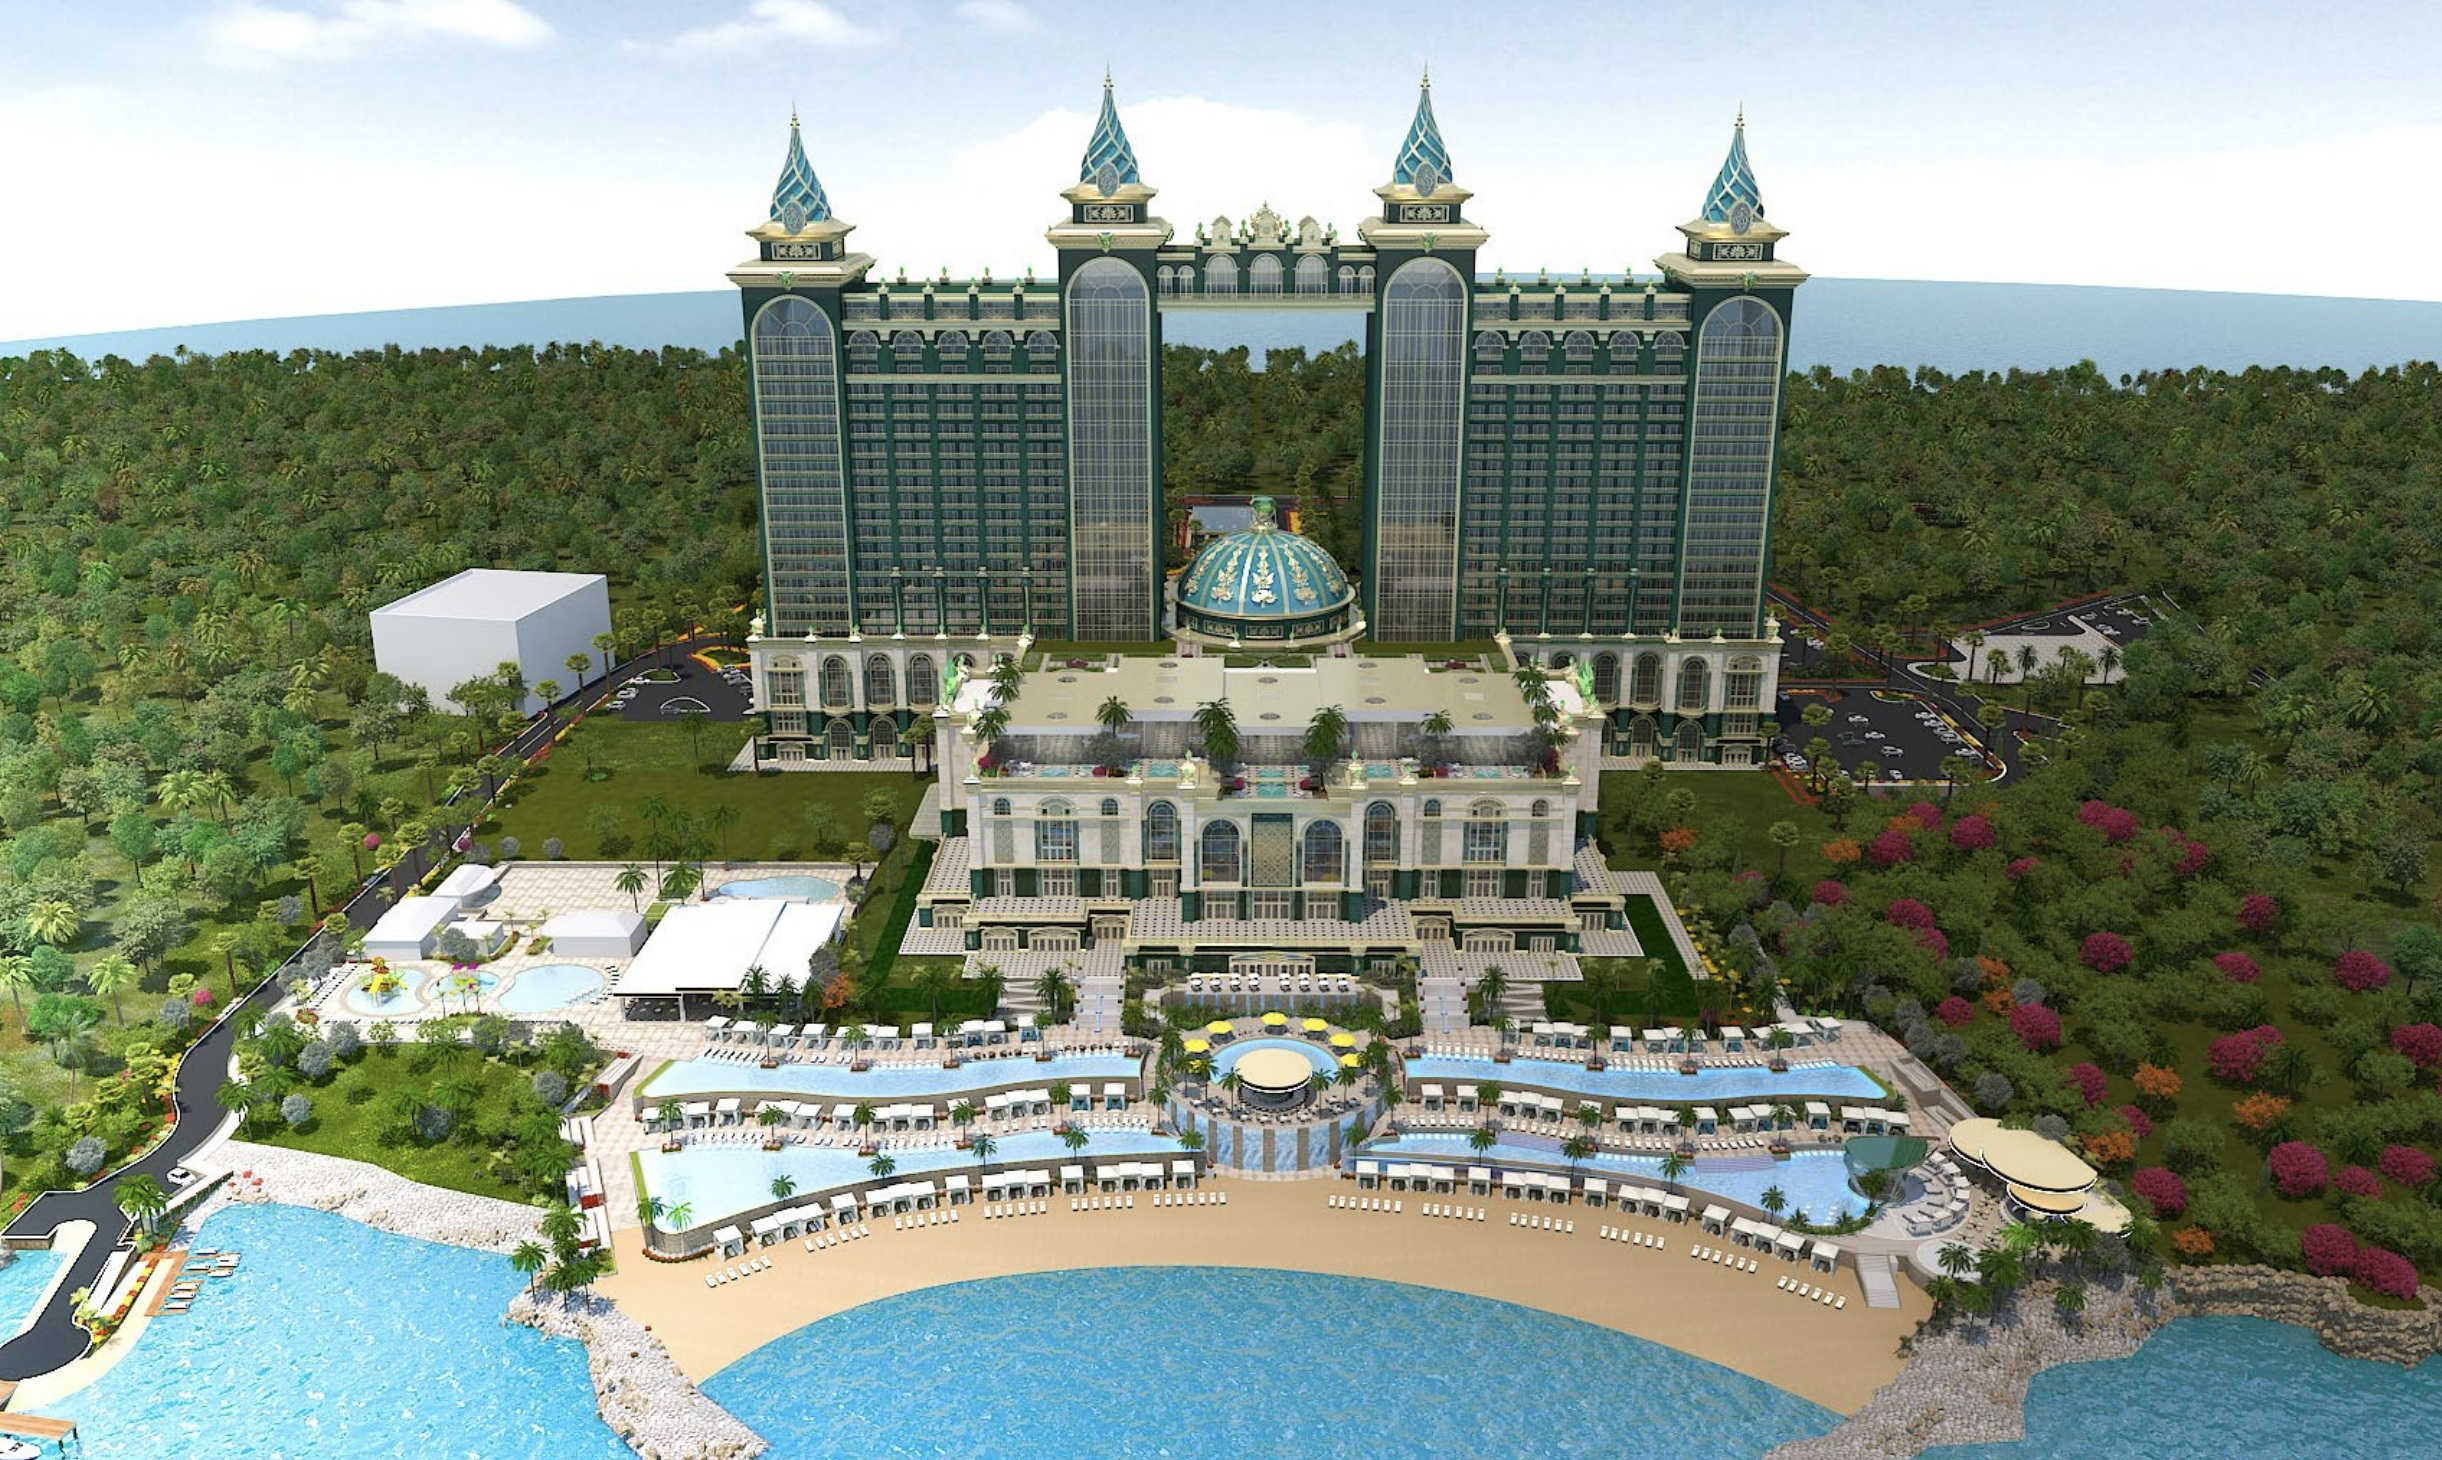 emerald casino and resort, cebu